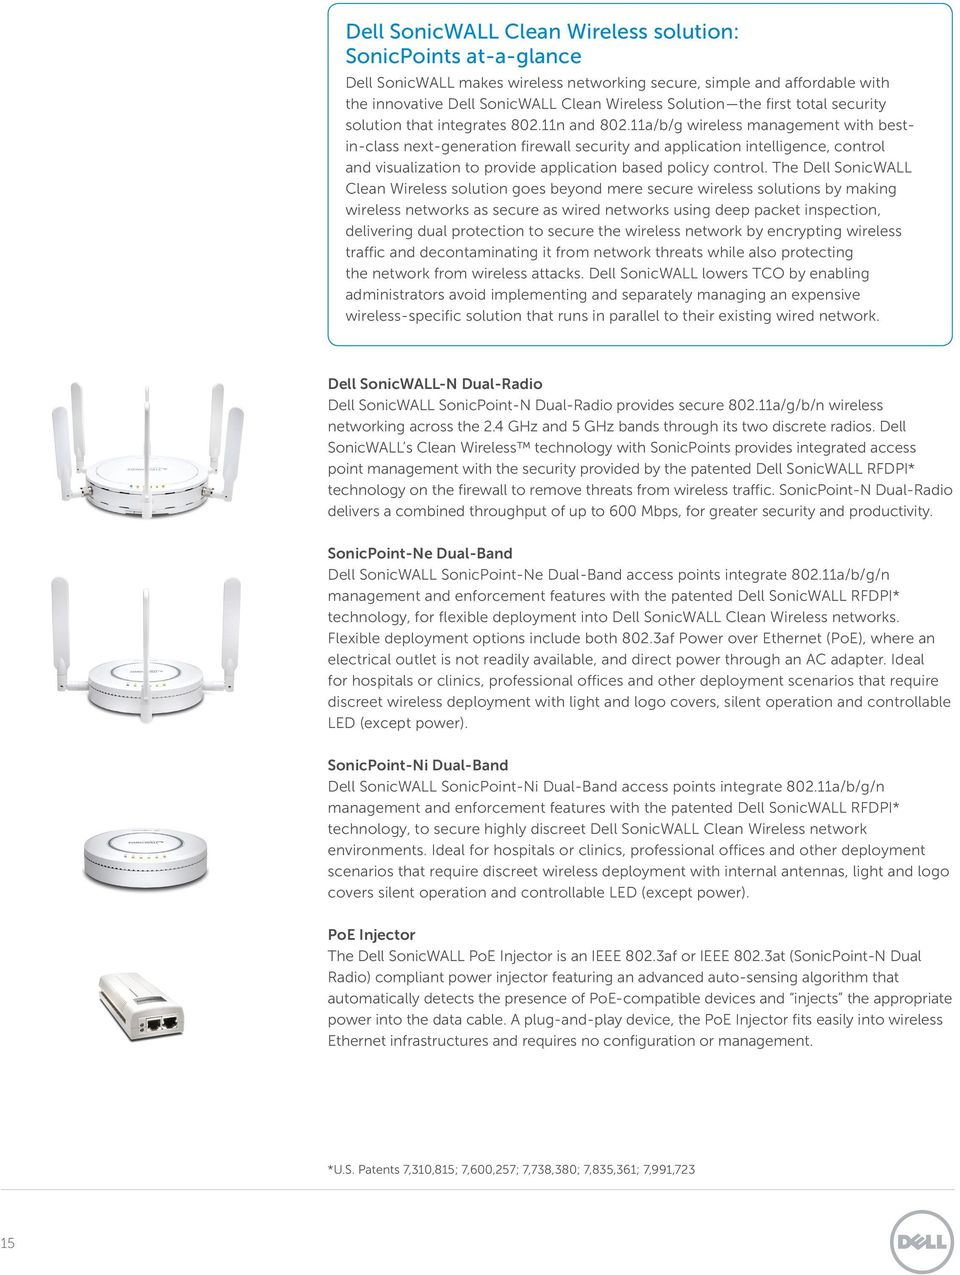 11a/b/g wireless management with bestin-class next-generation firewall security and application intelligence, control and visualization to provide application based policy control.